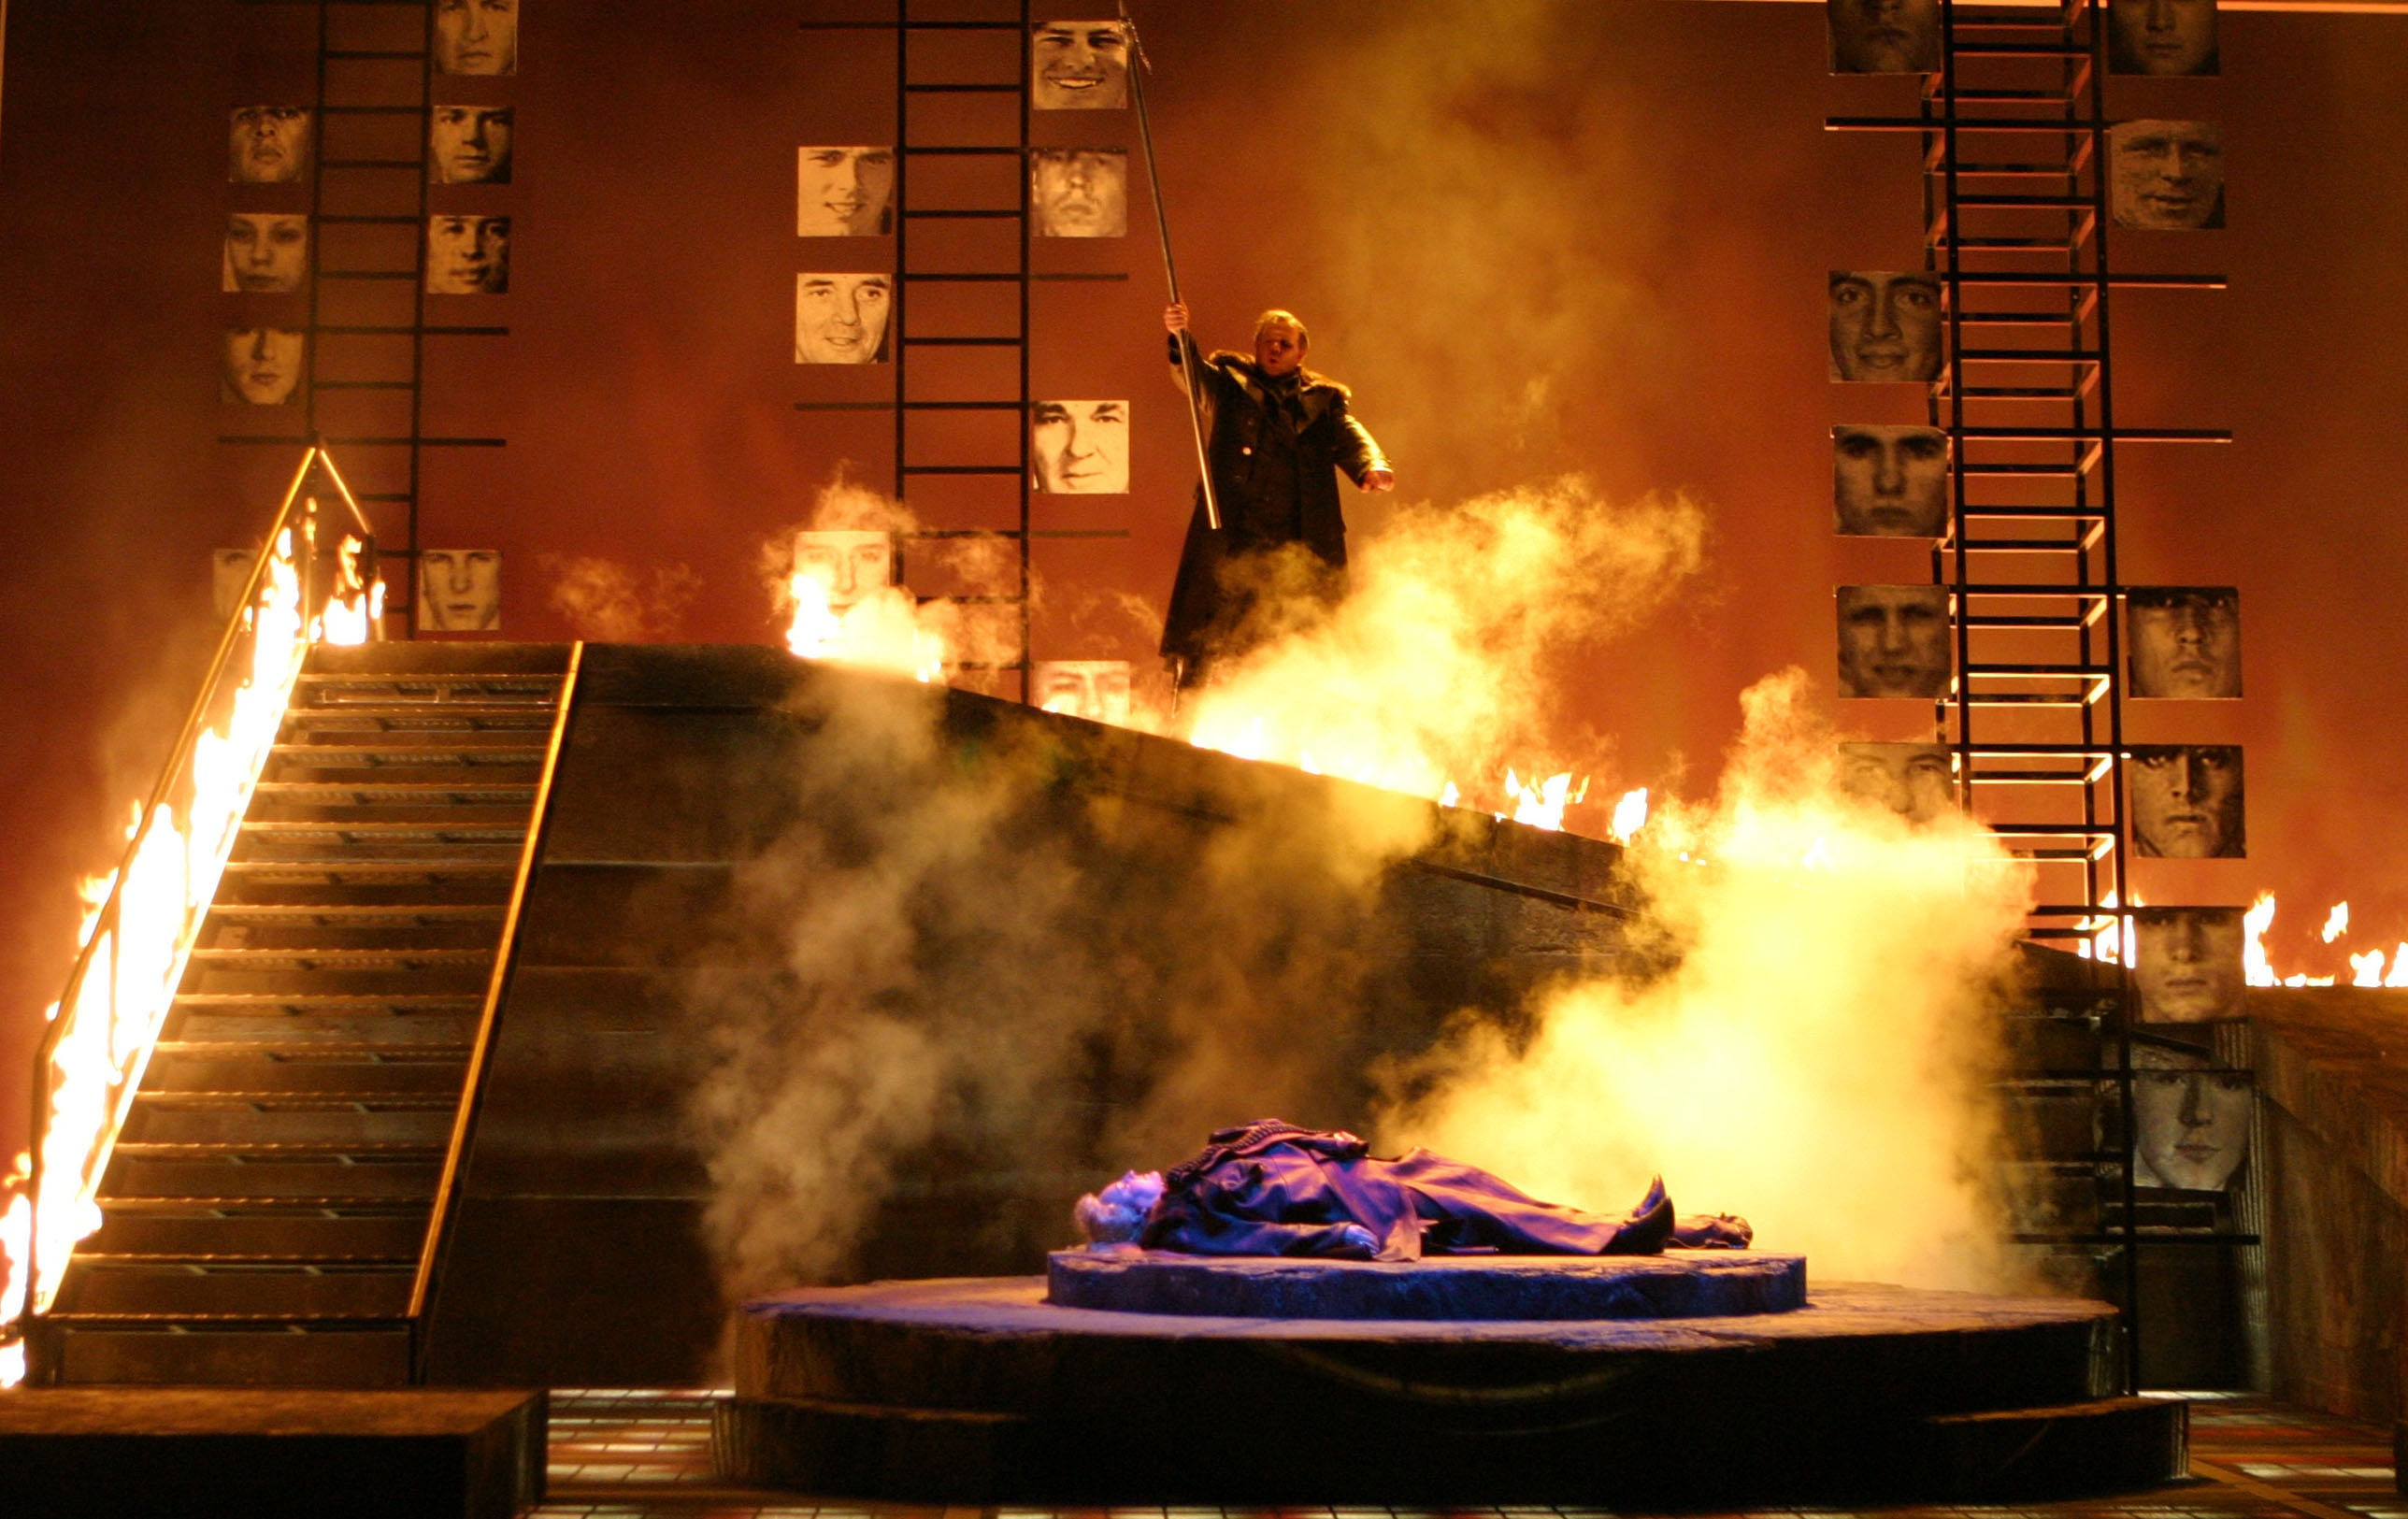 Wotan imprisoning Brunnhilde in fire in diewalkure